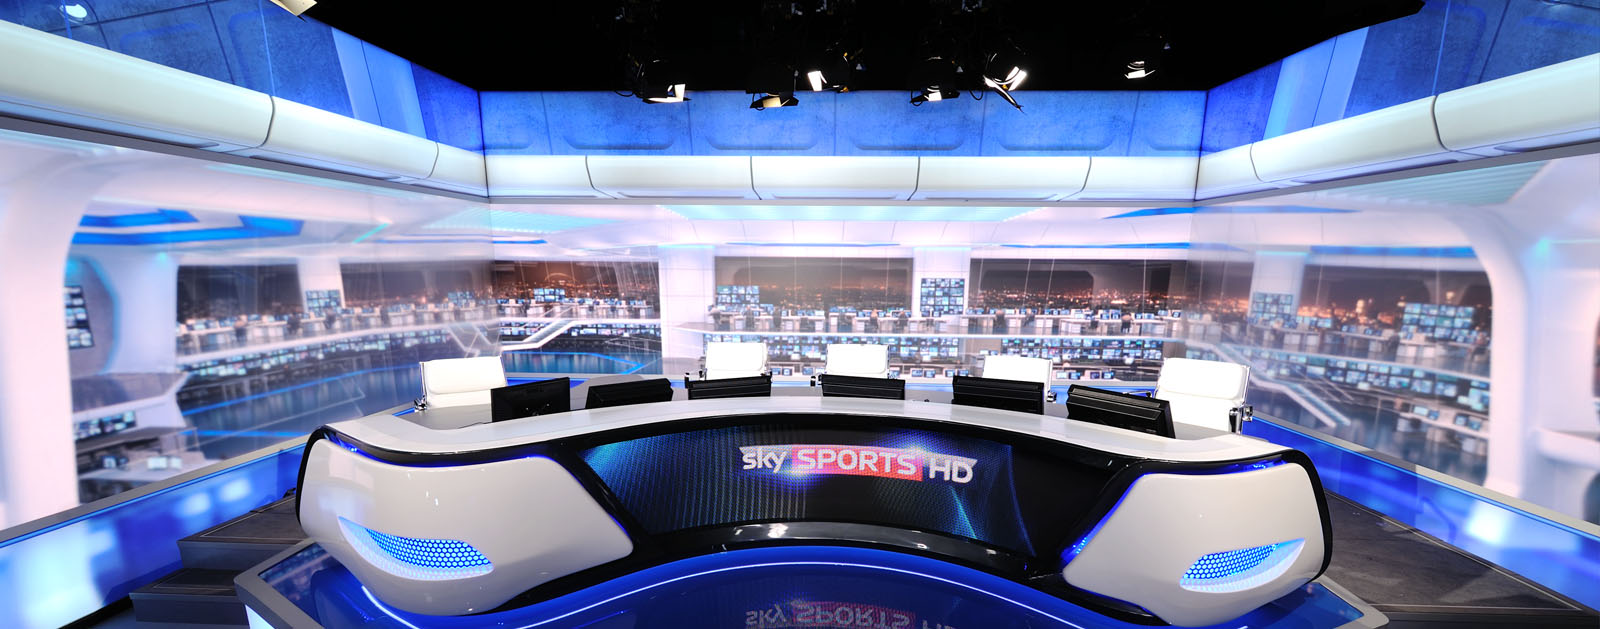 Digital Backdrop for Sky Sports